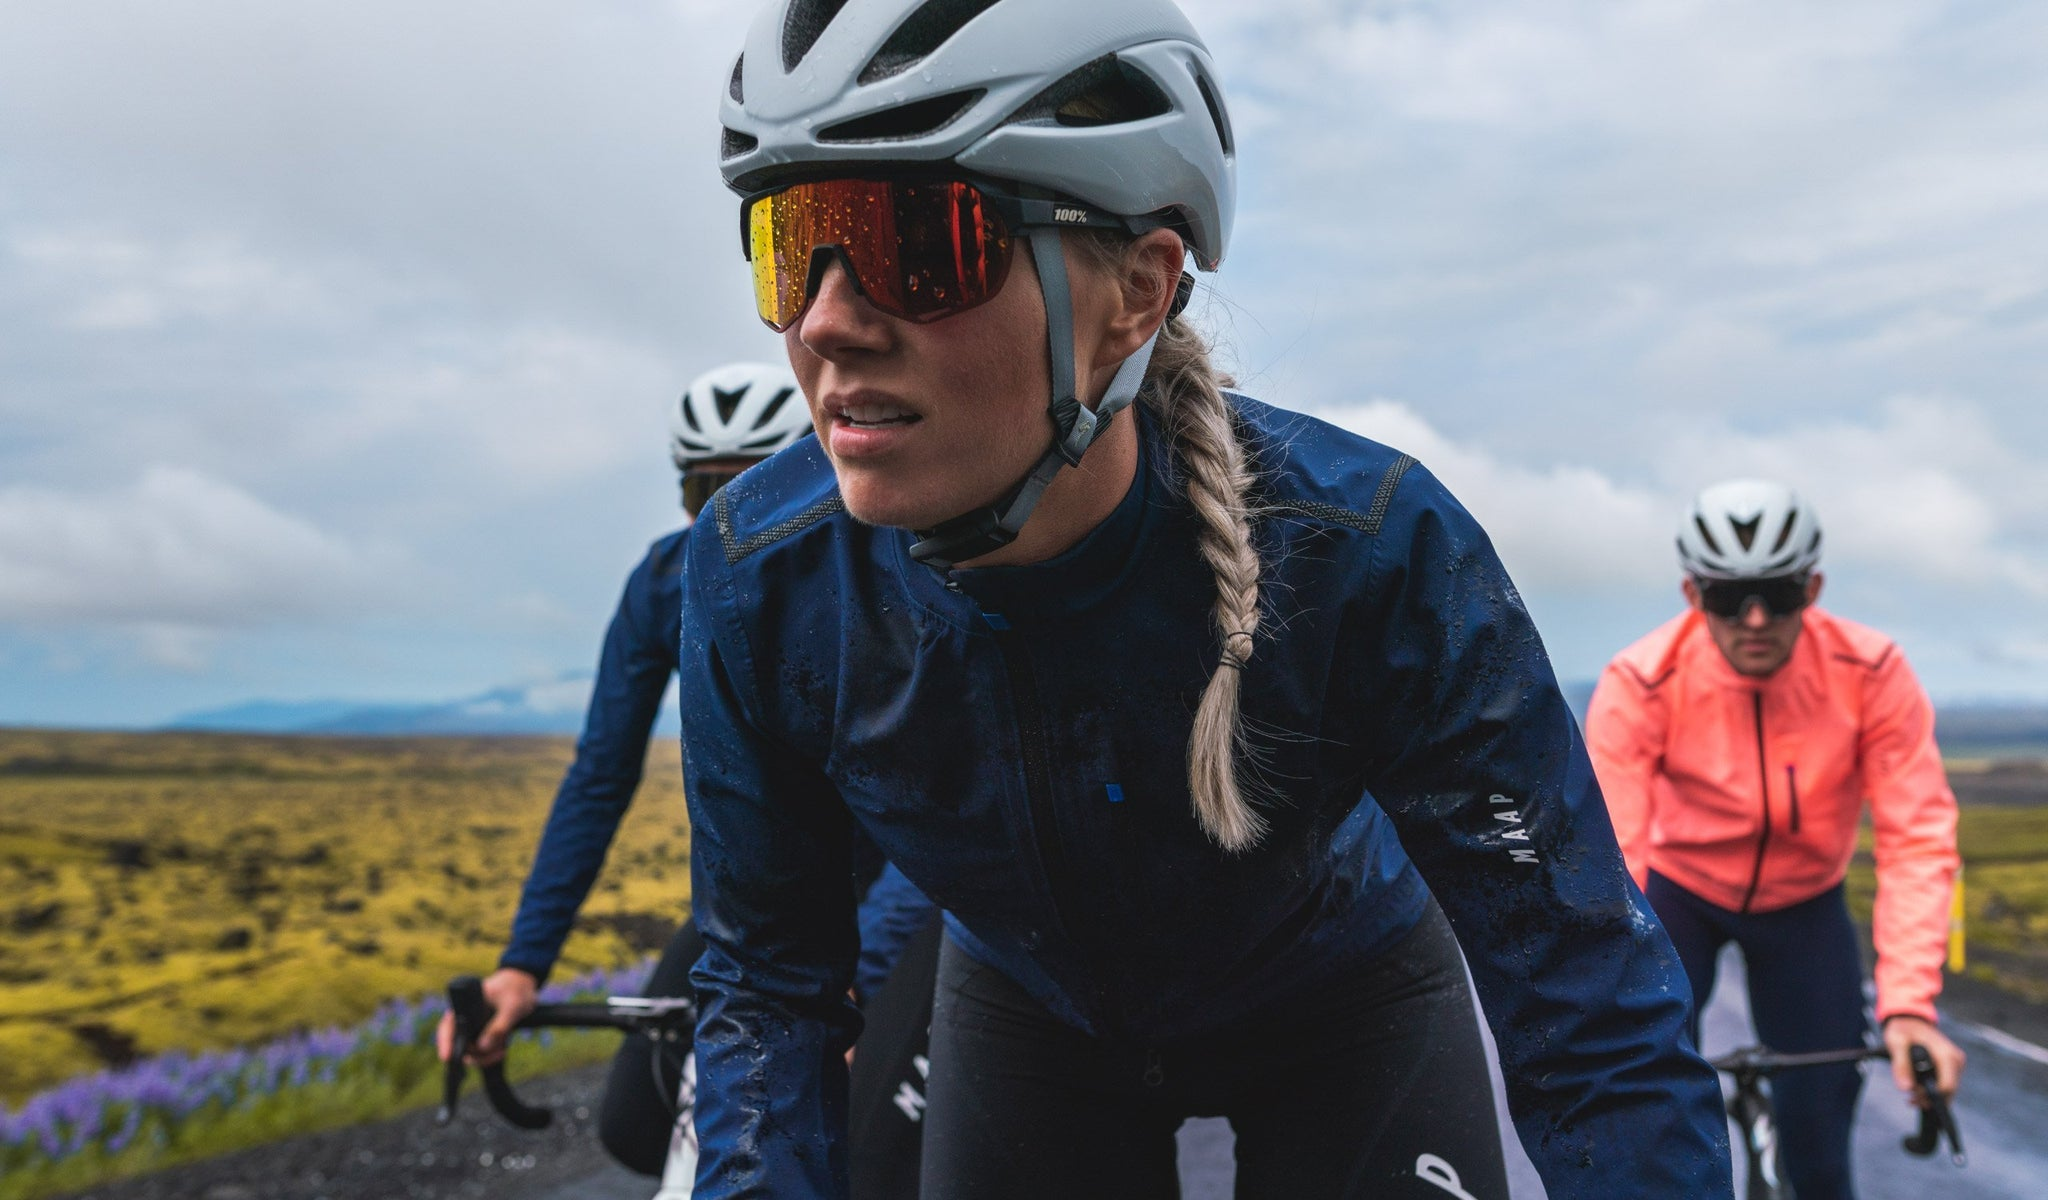 MAAP Women's Ascend Pro Rain Jacket for waterproof protection when riding in wet weather.